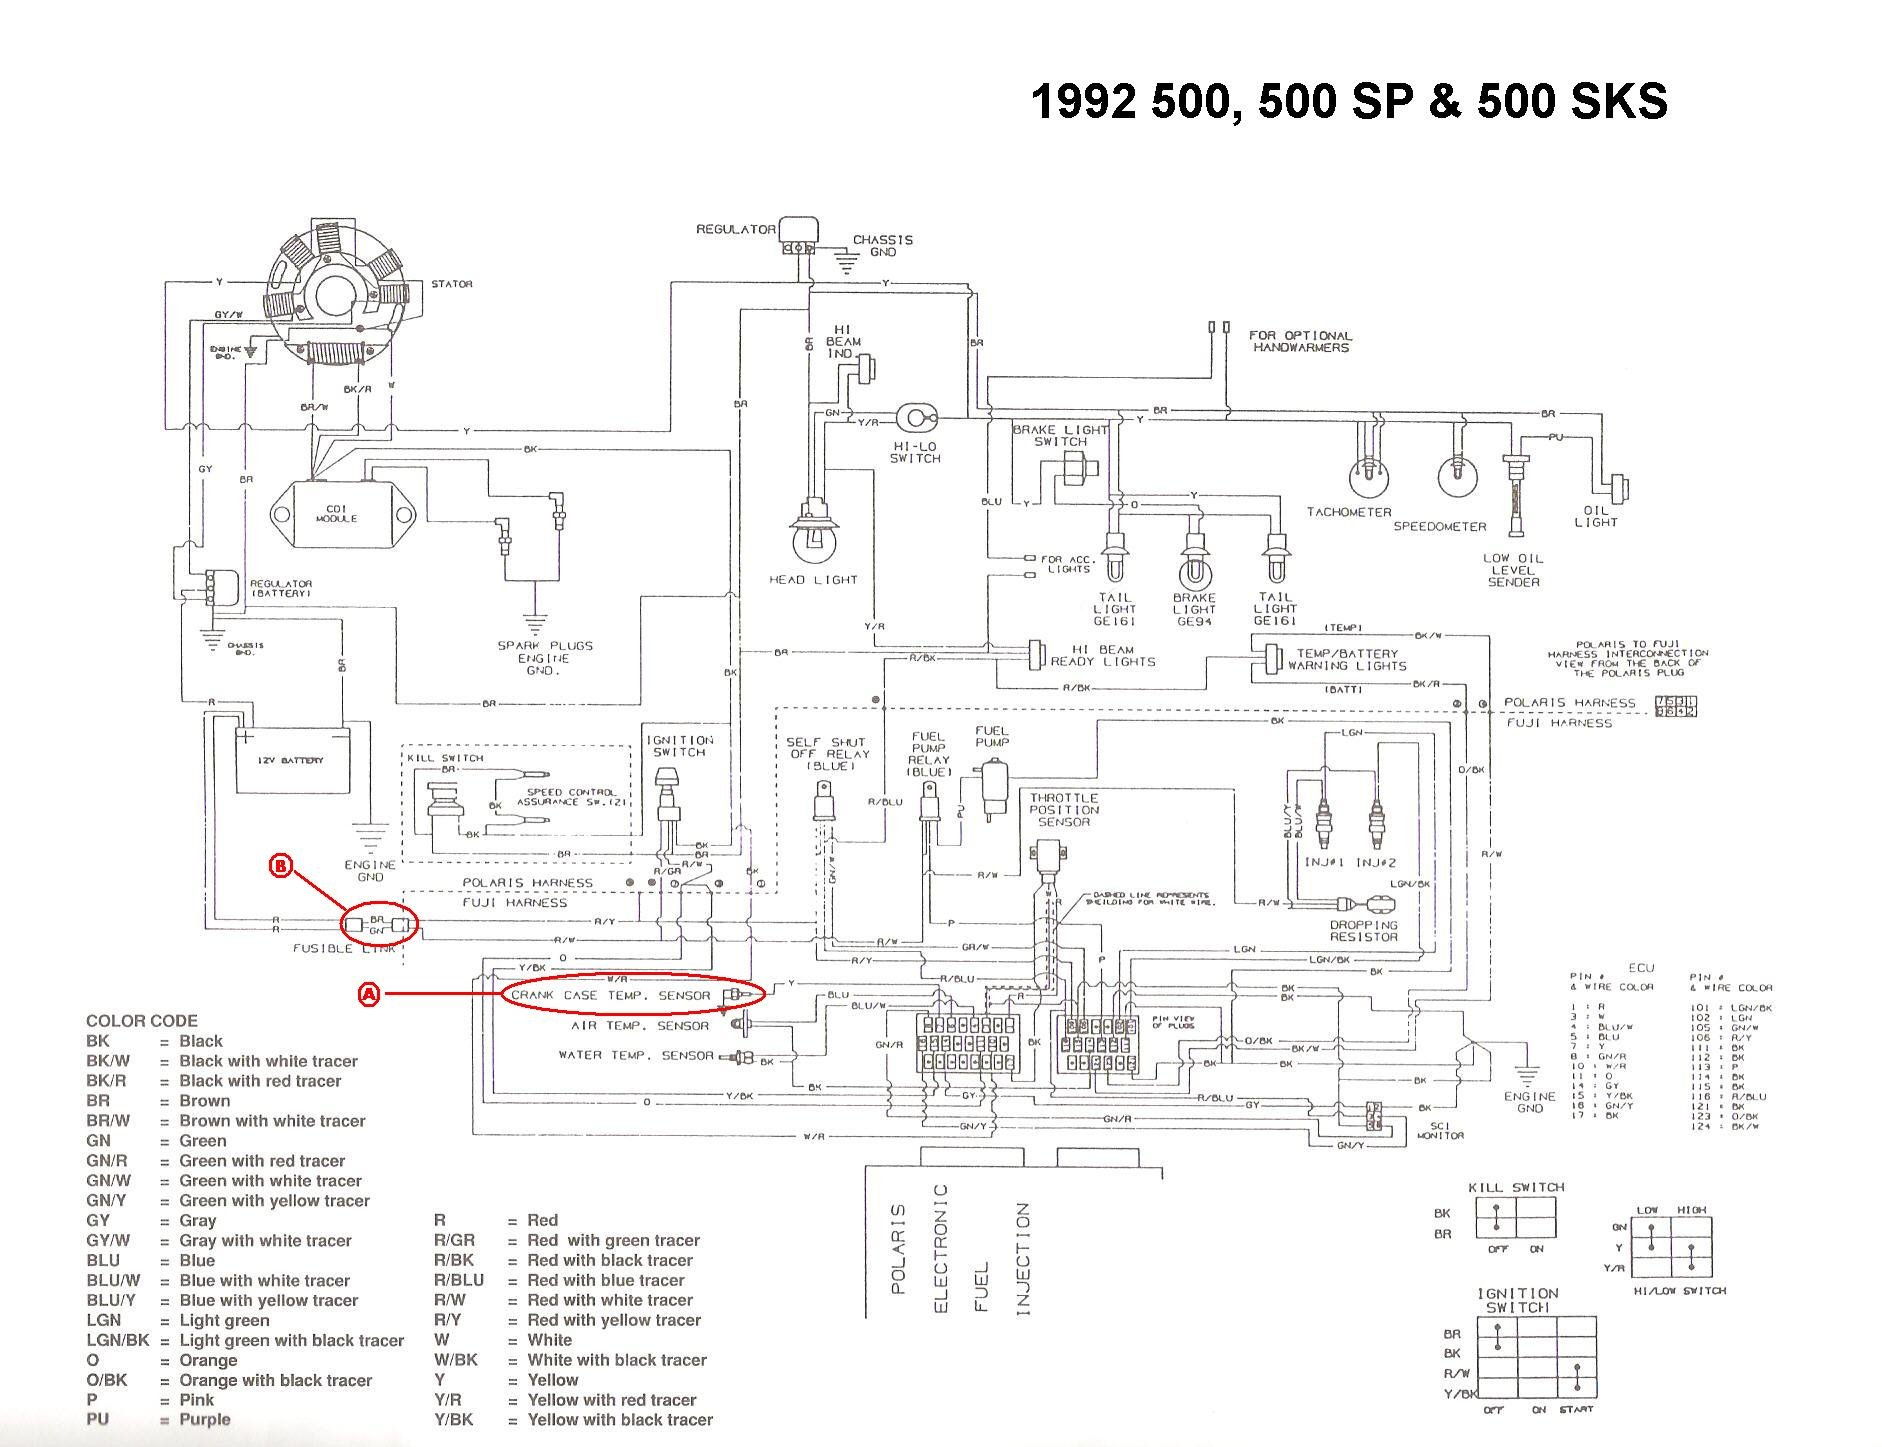 Wiring Diagram Atv Polari Sportsman 500 Efi Wiring